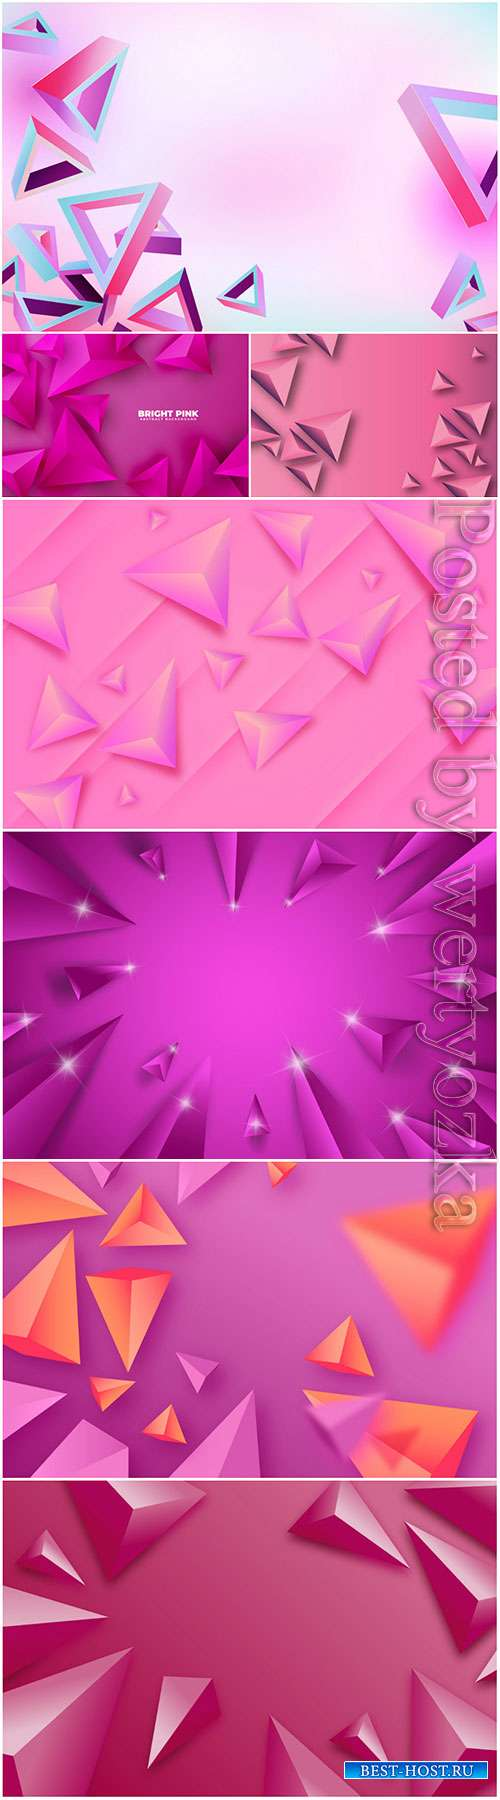 3d vector background with pink abstract elements